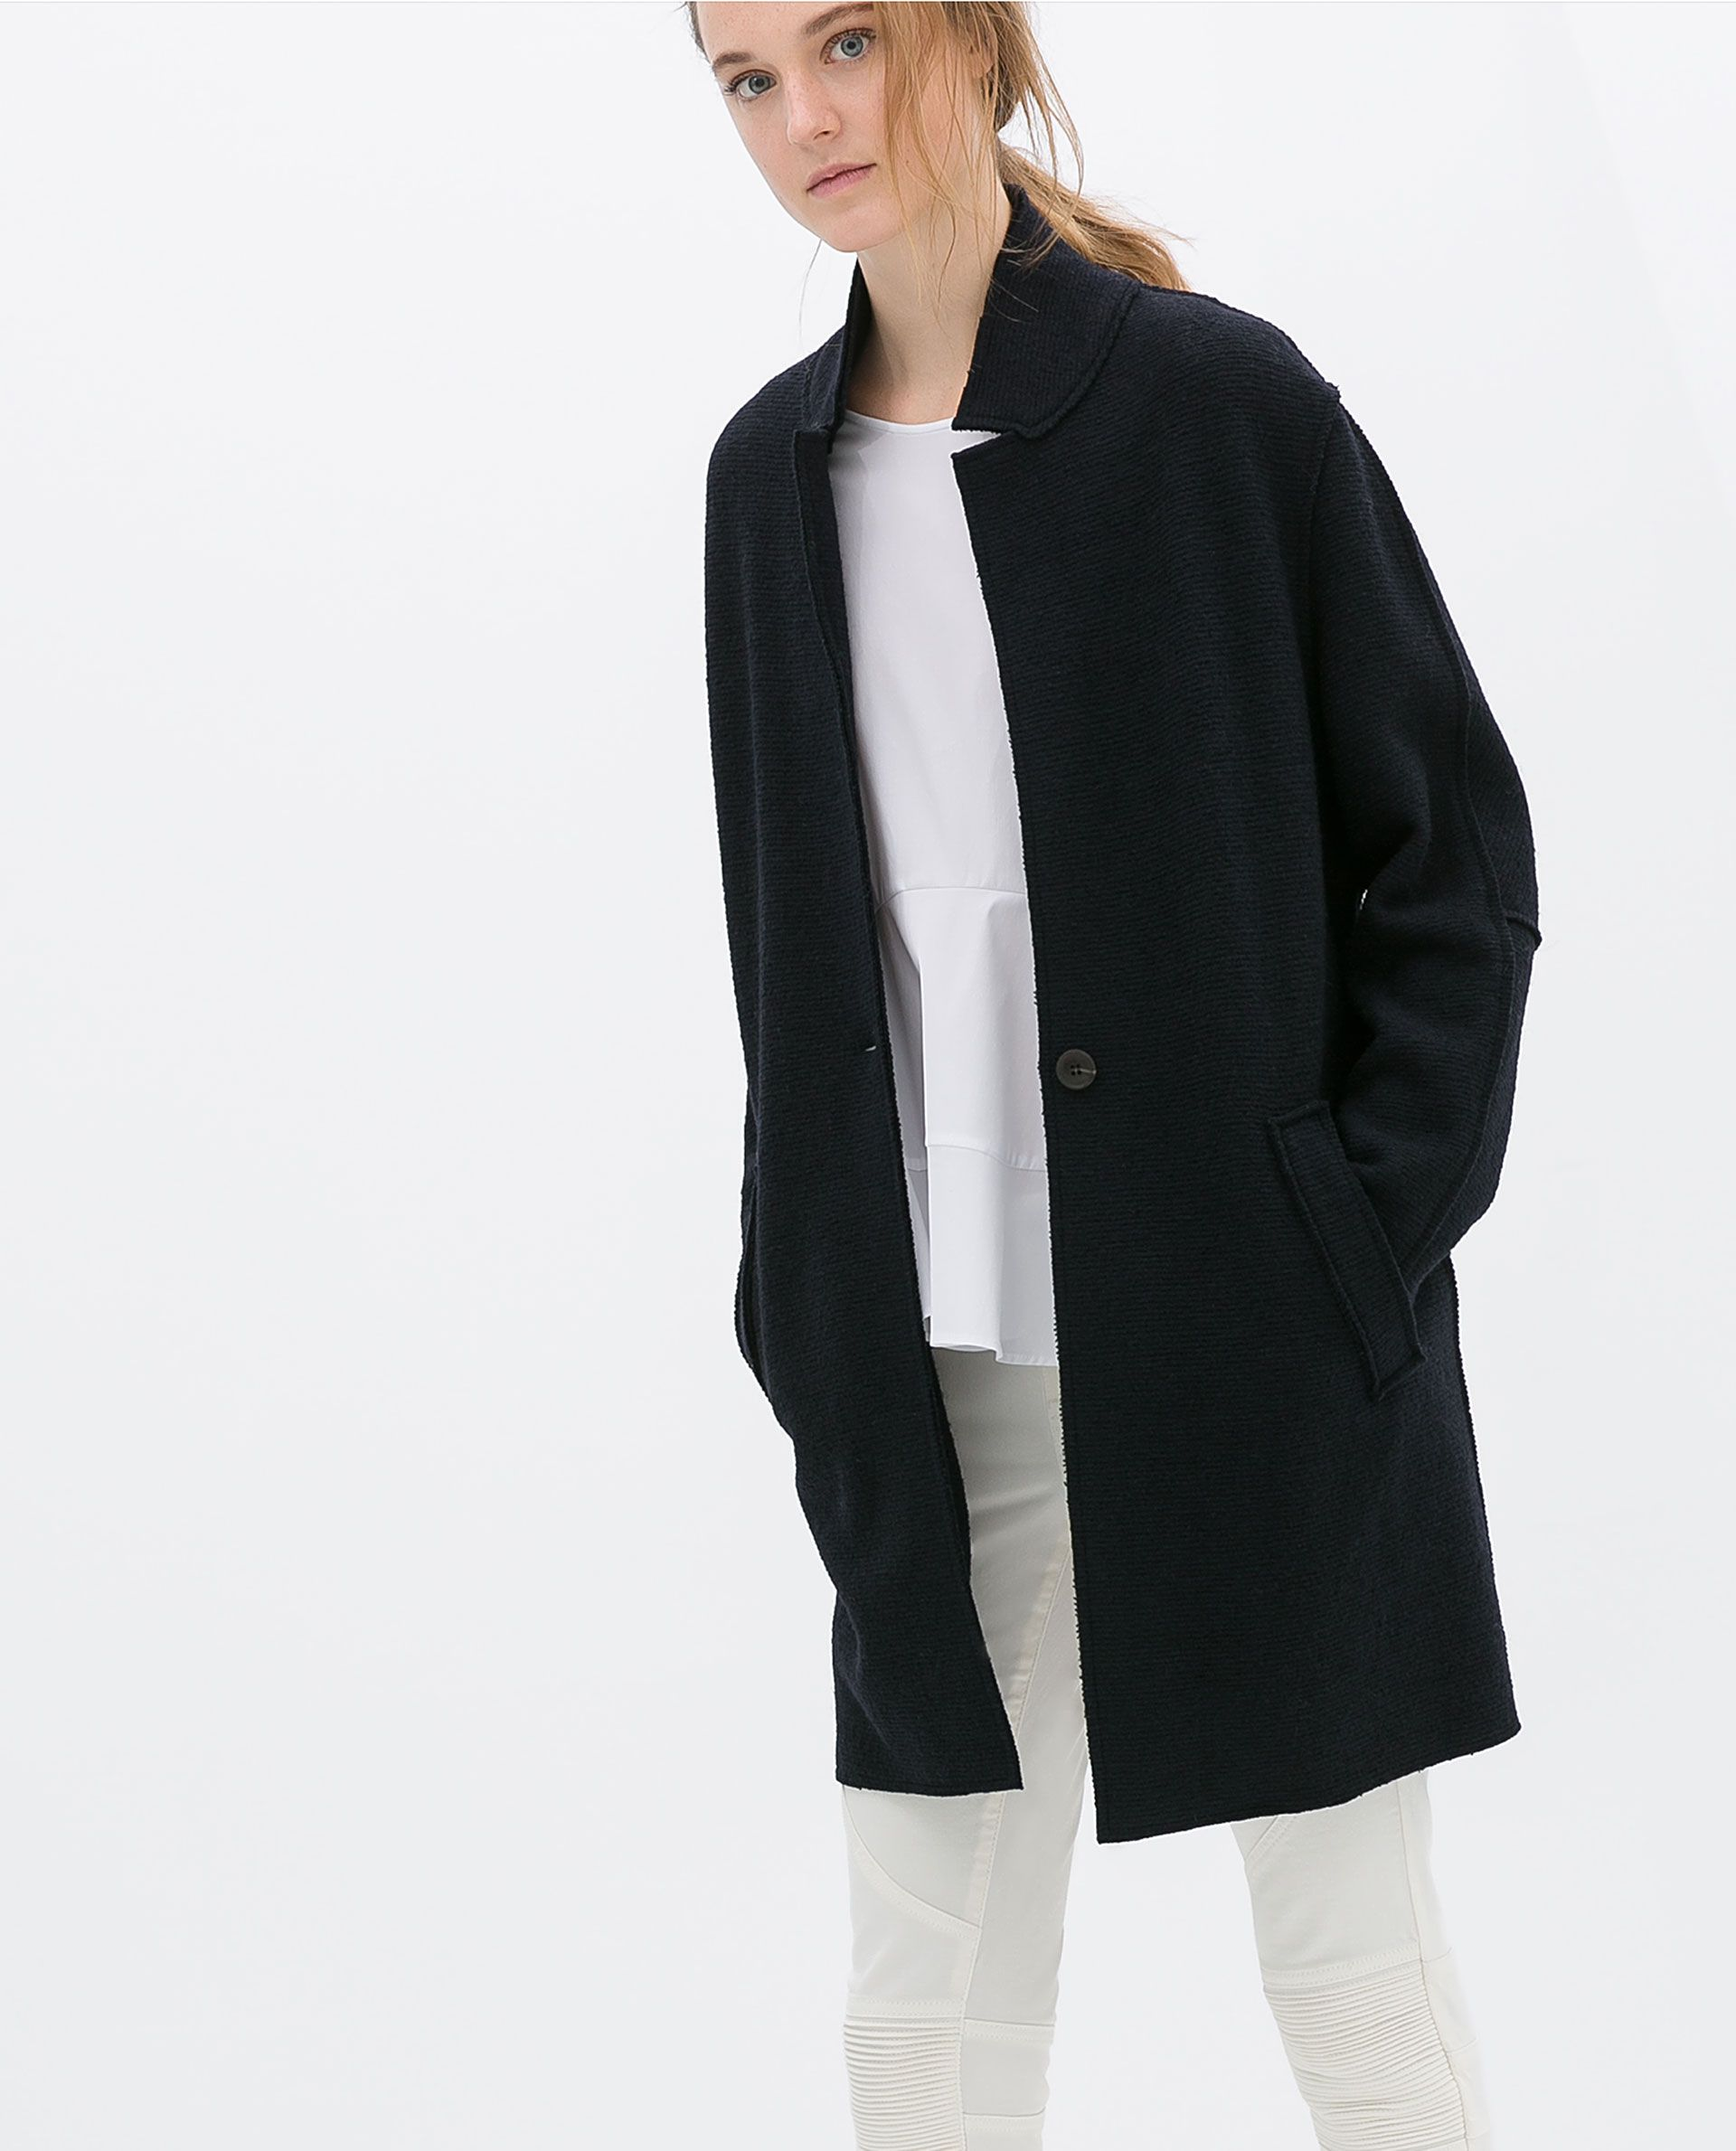 WOOL COAT Coats WOMAN | ZARA United States | Zara coat